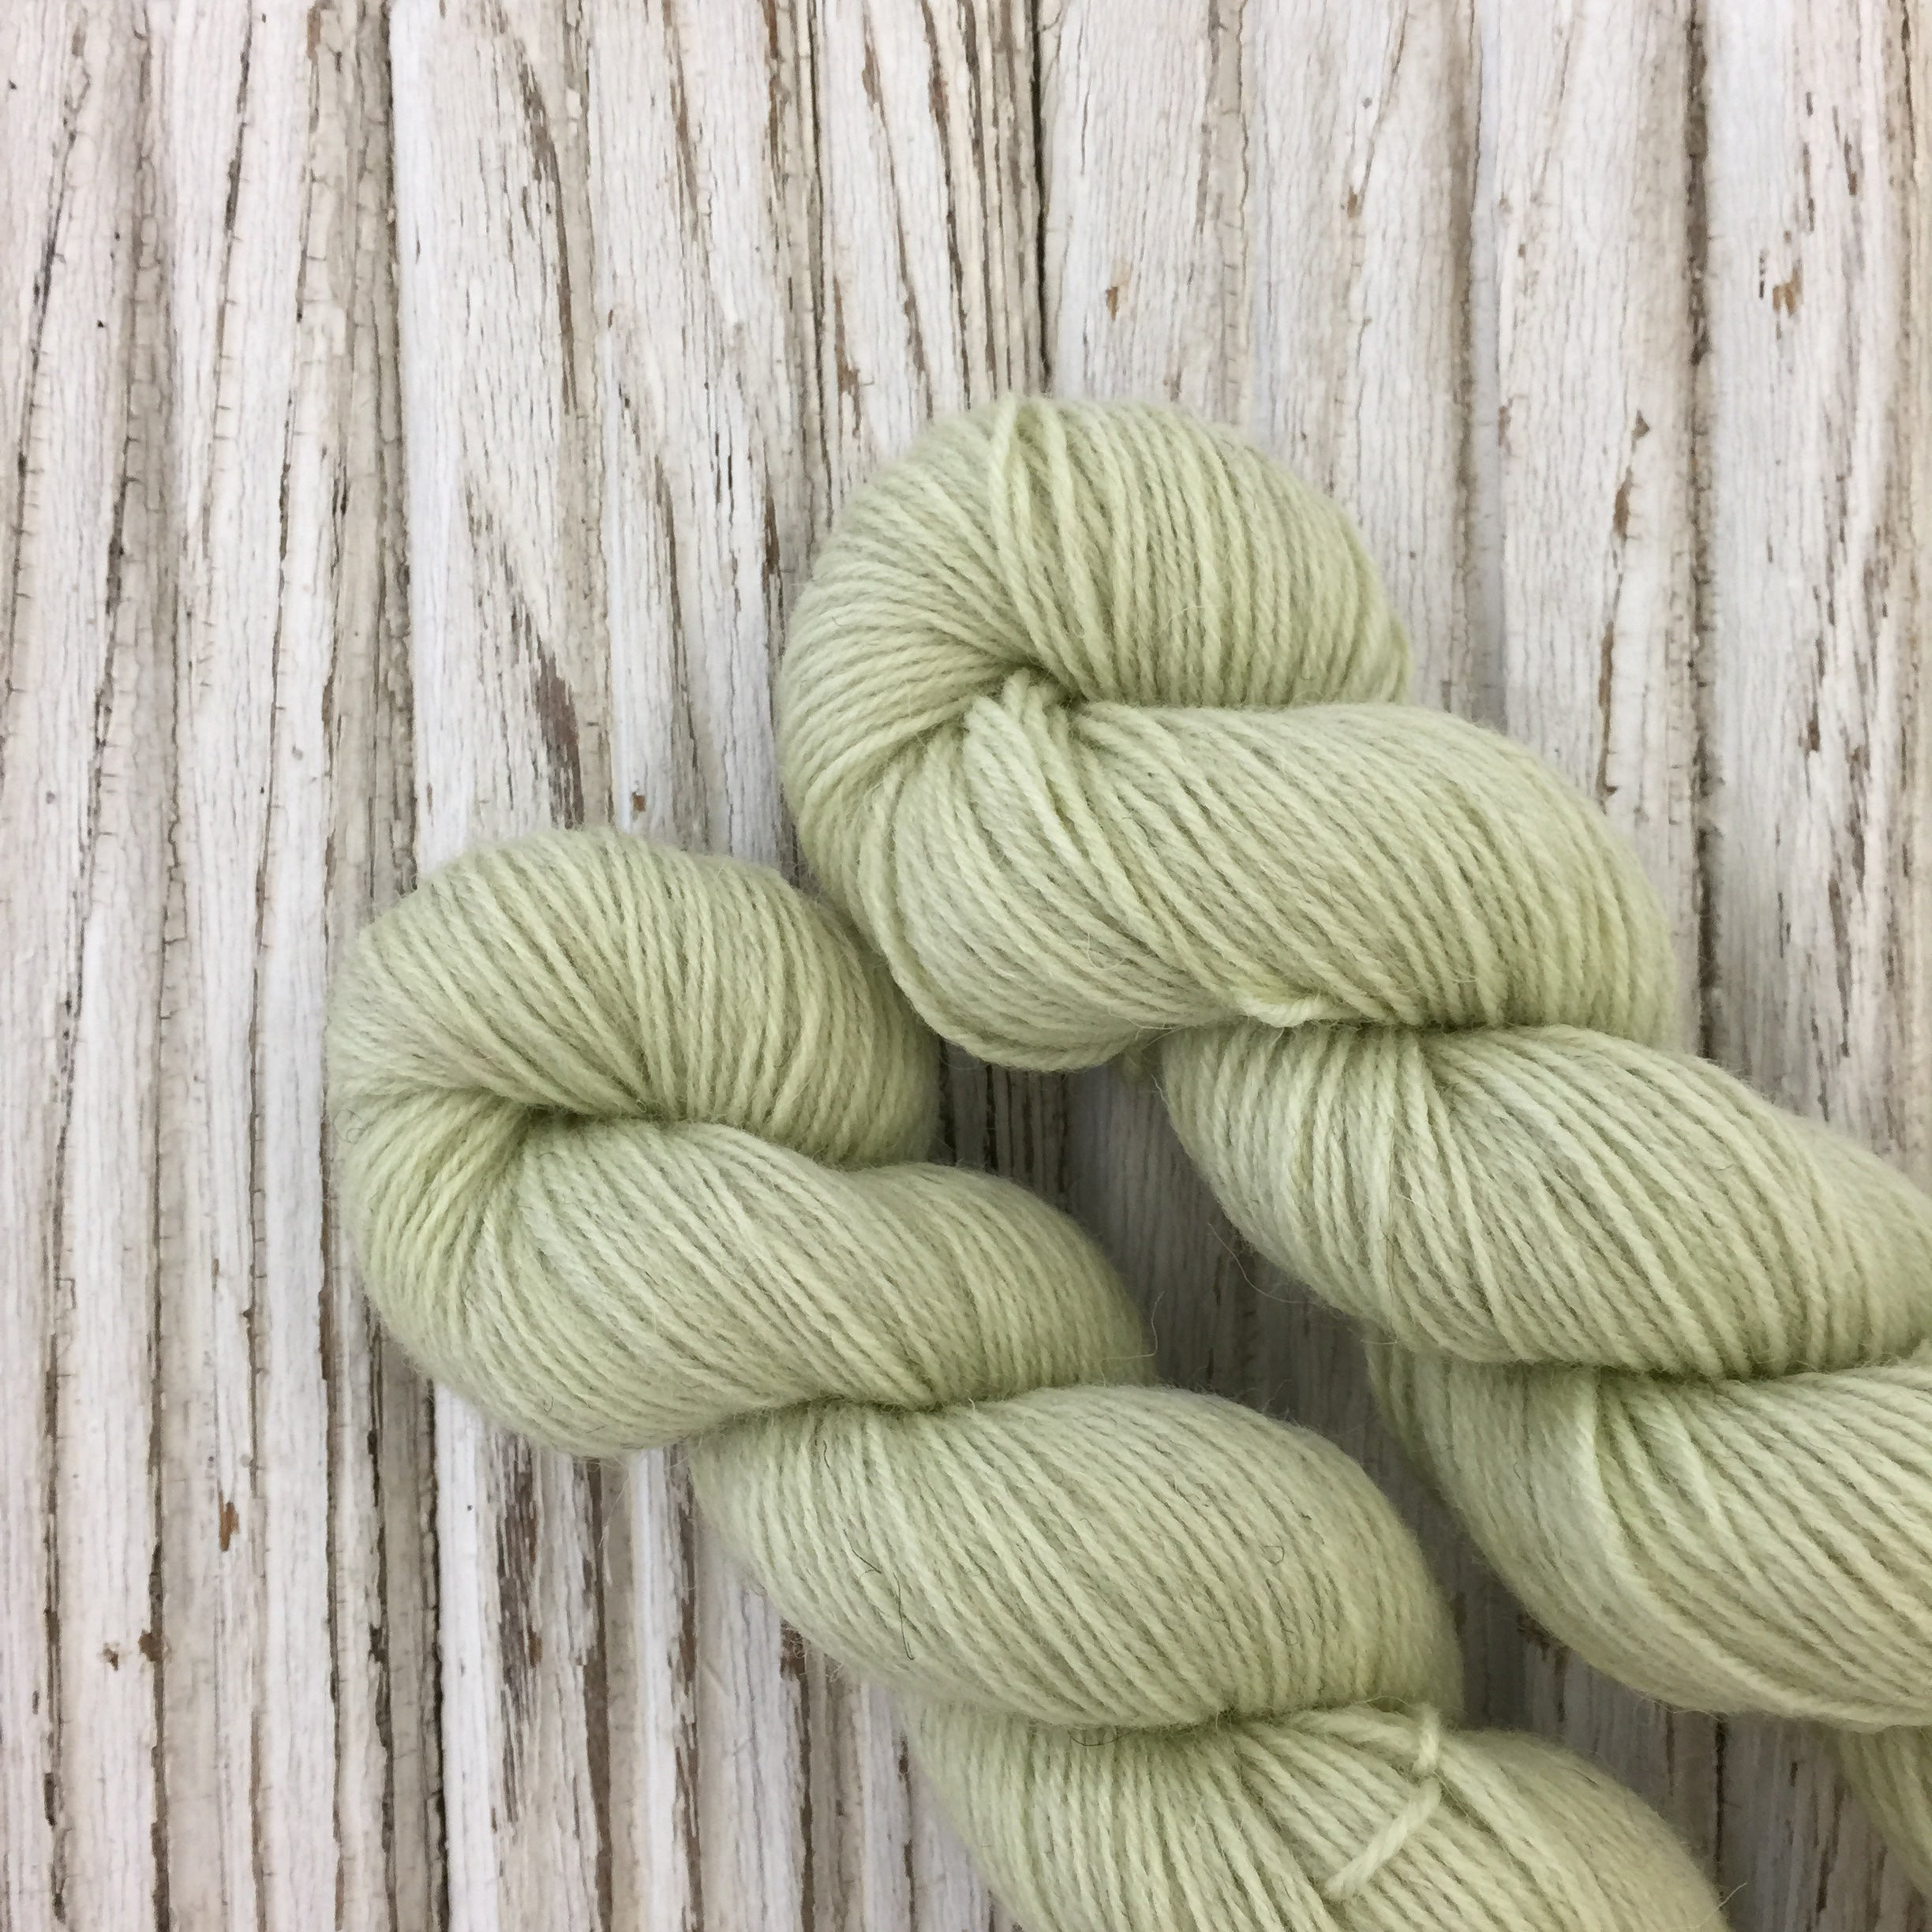 Miss Bingley  WGLY Rustic non superwash